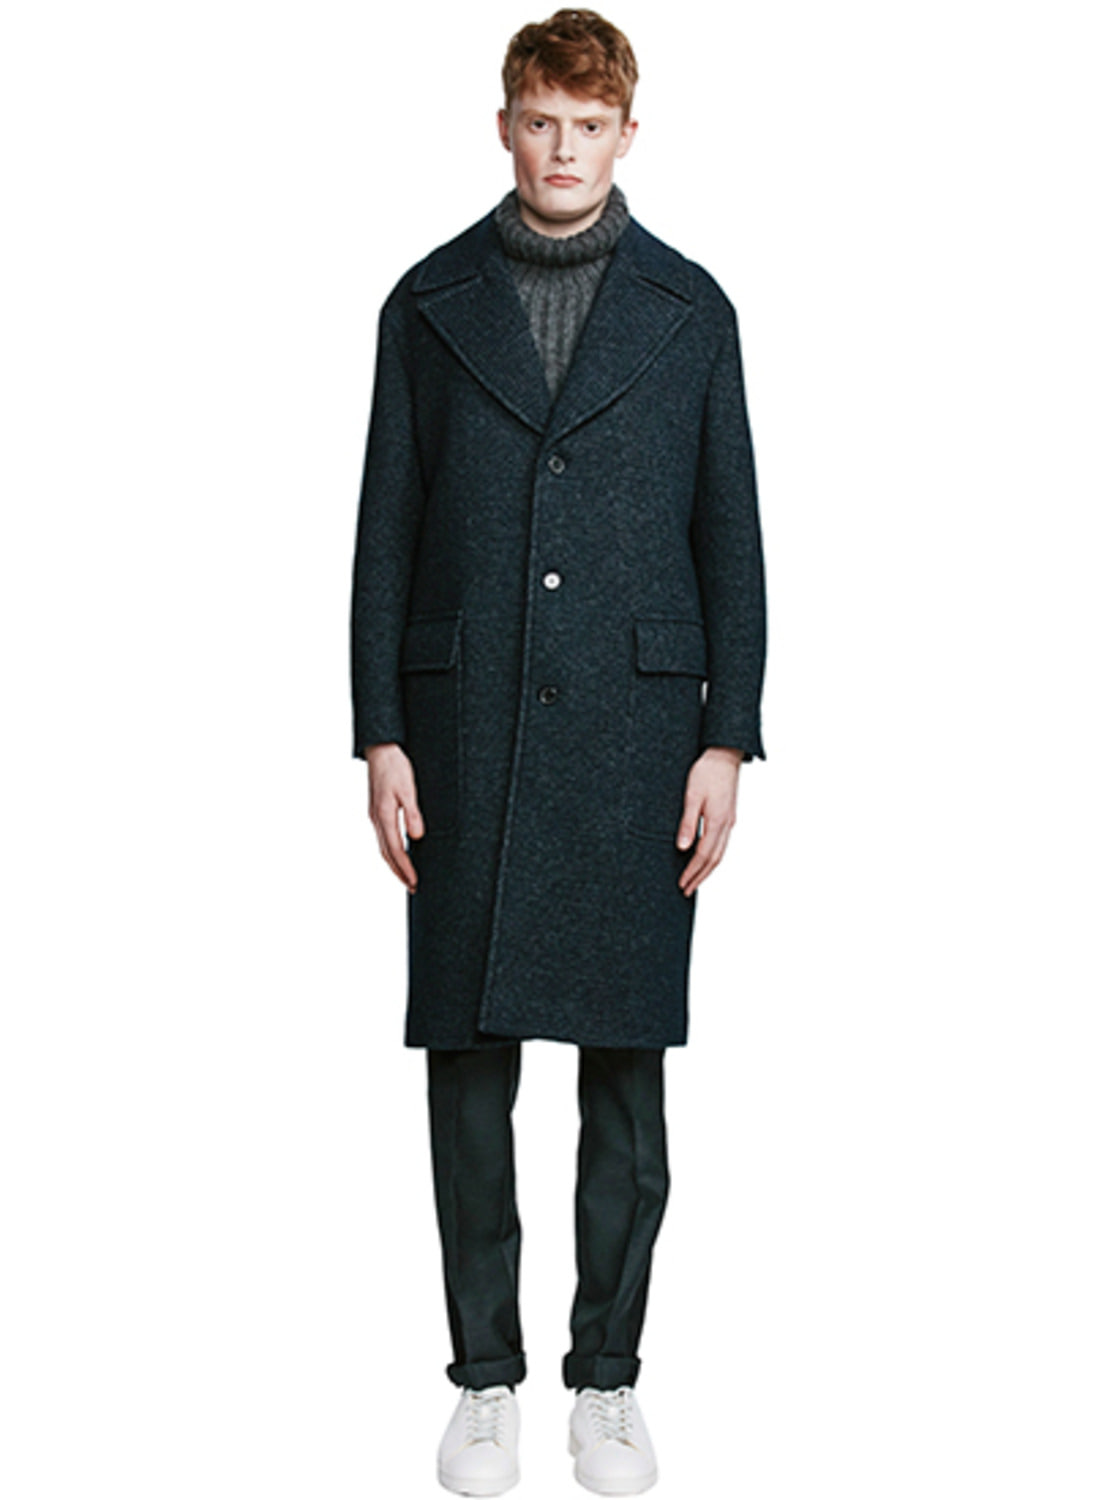 Navy Big Flap Pocket Tweed Coat